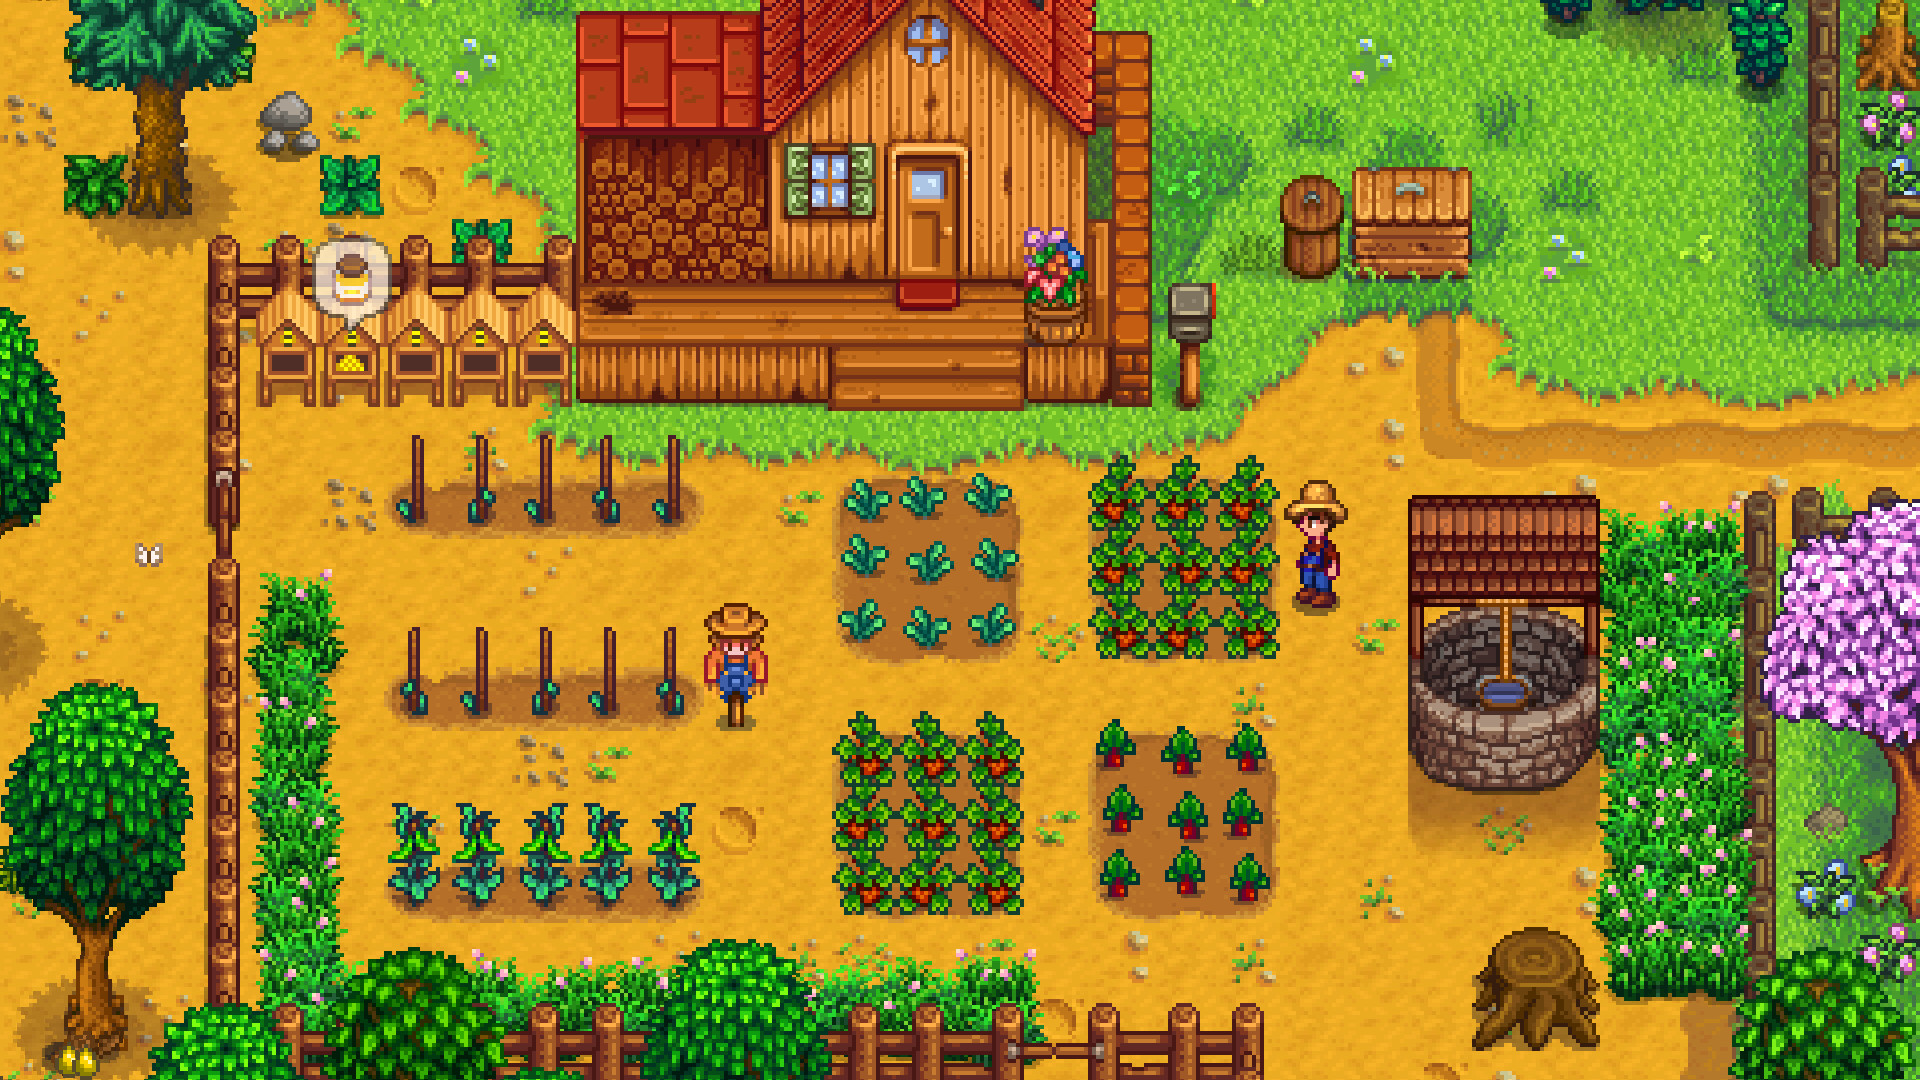 Stardew Valley For Mobile Will Let You Import Your PC Save Games